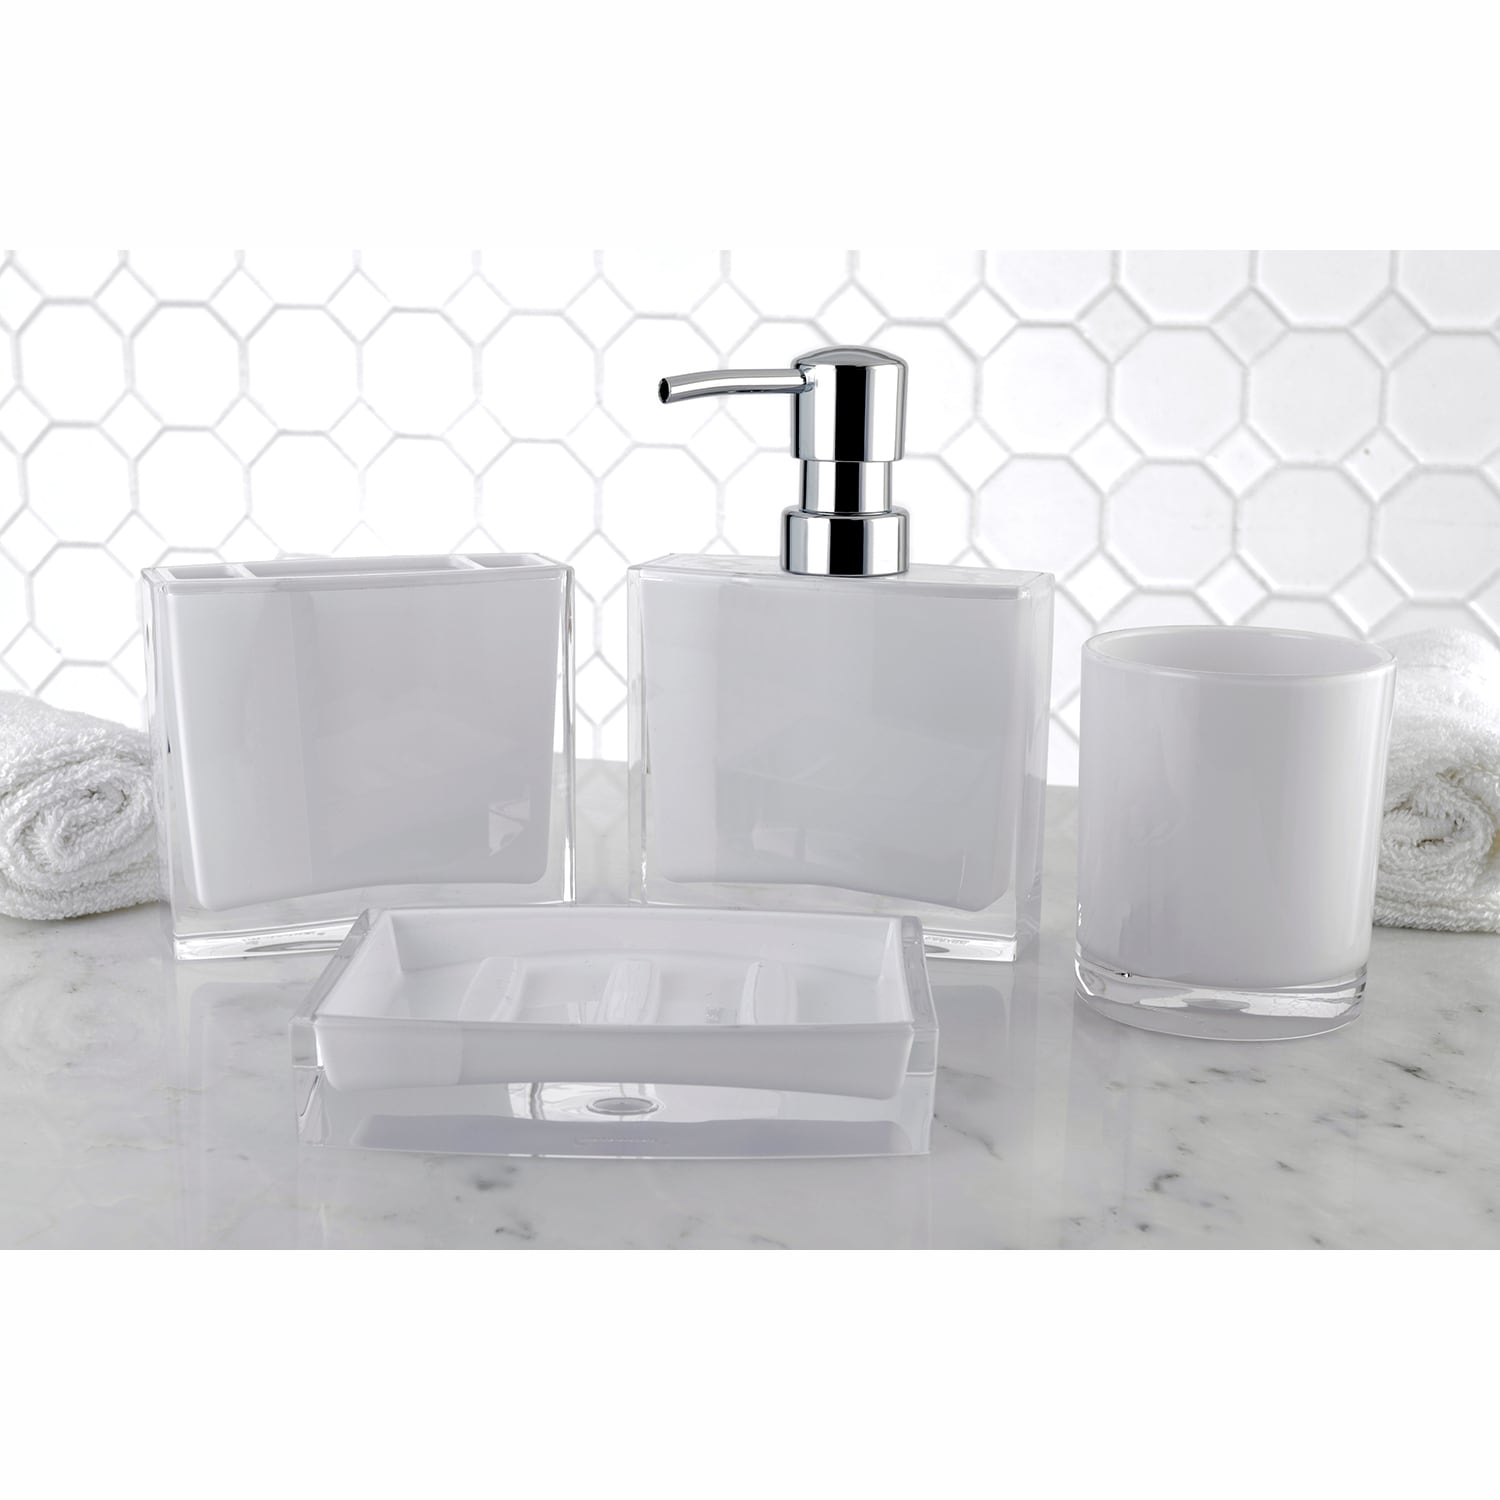 Bathroom Dispenser Set Modern White 4 Piece Bath Accessory Set